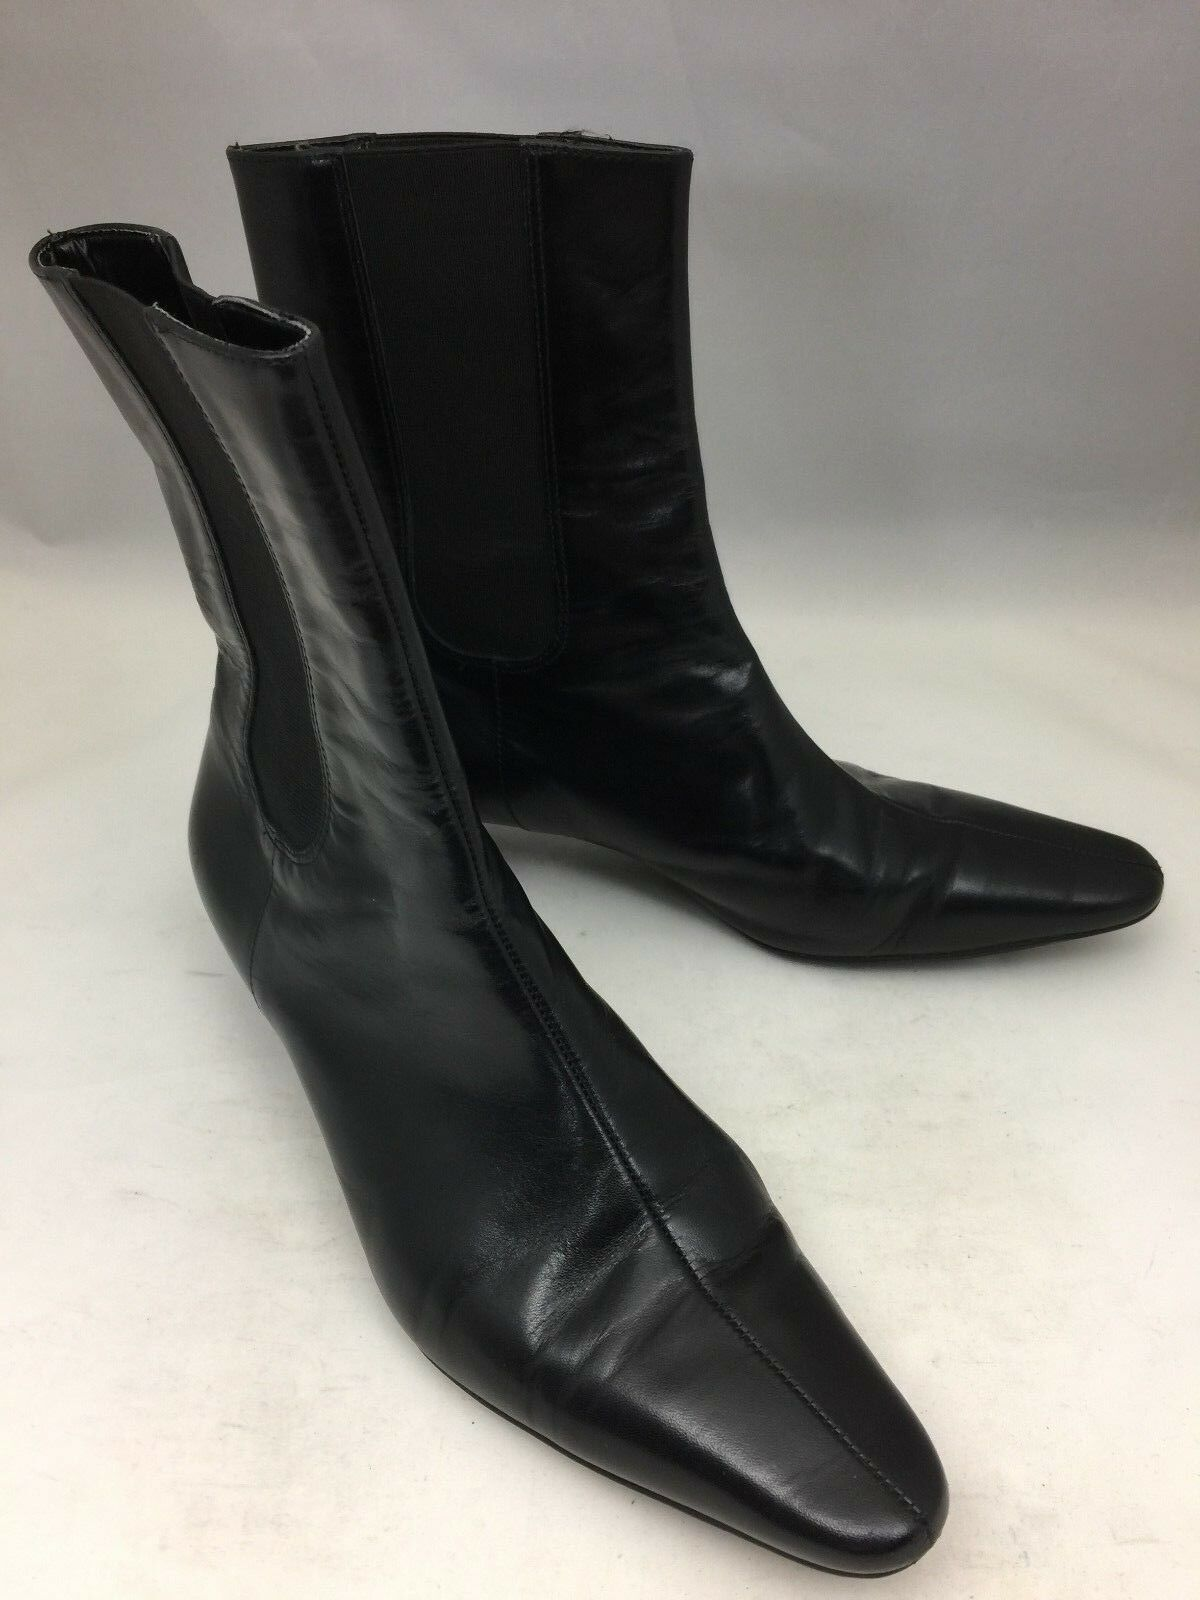 TALBOTS Black Leather Short Pull On Ankle Boots Low Heel - Size 7.5B EUC